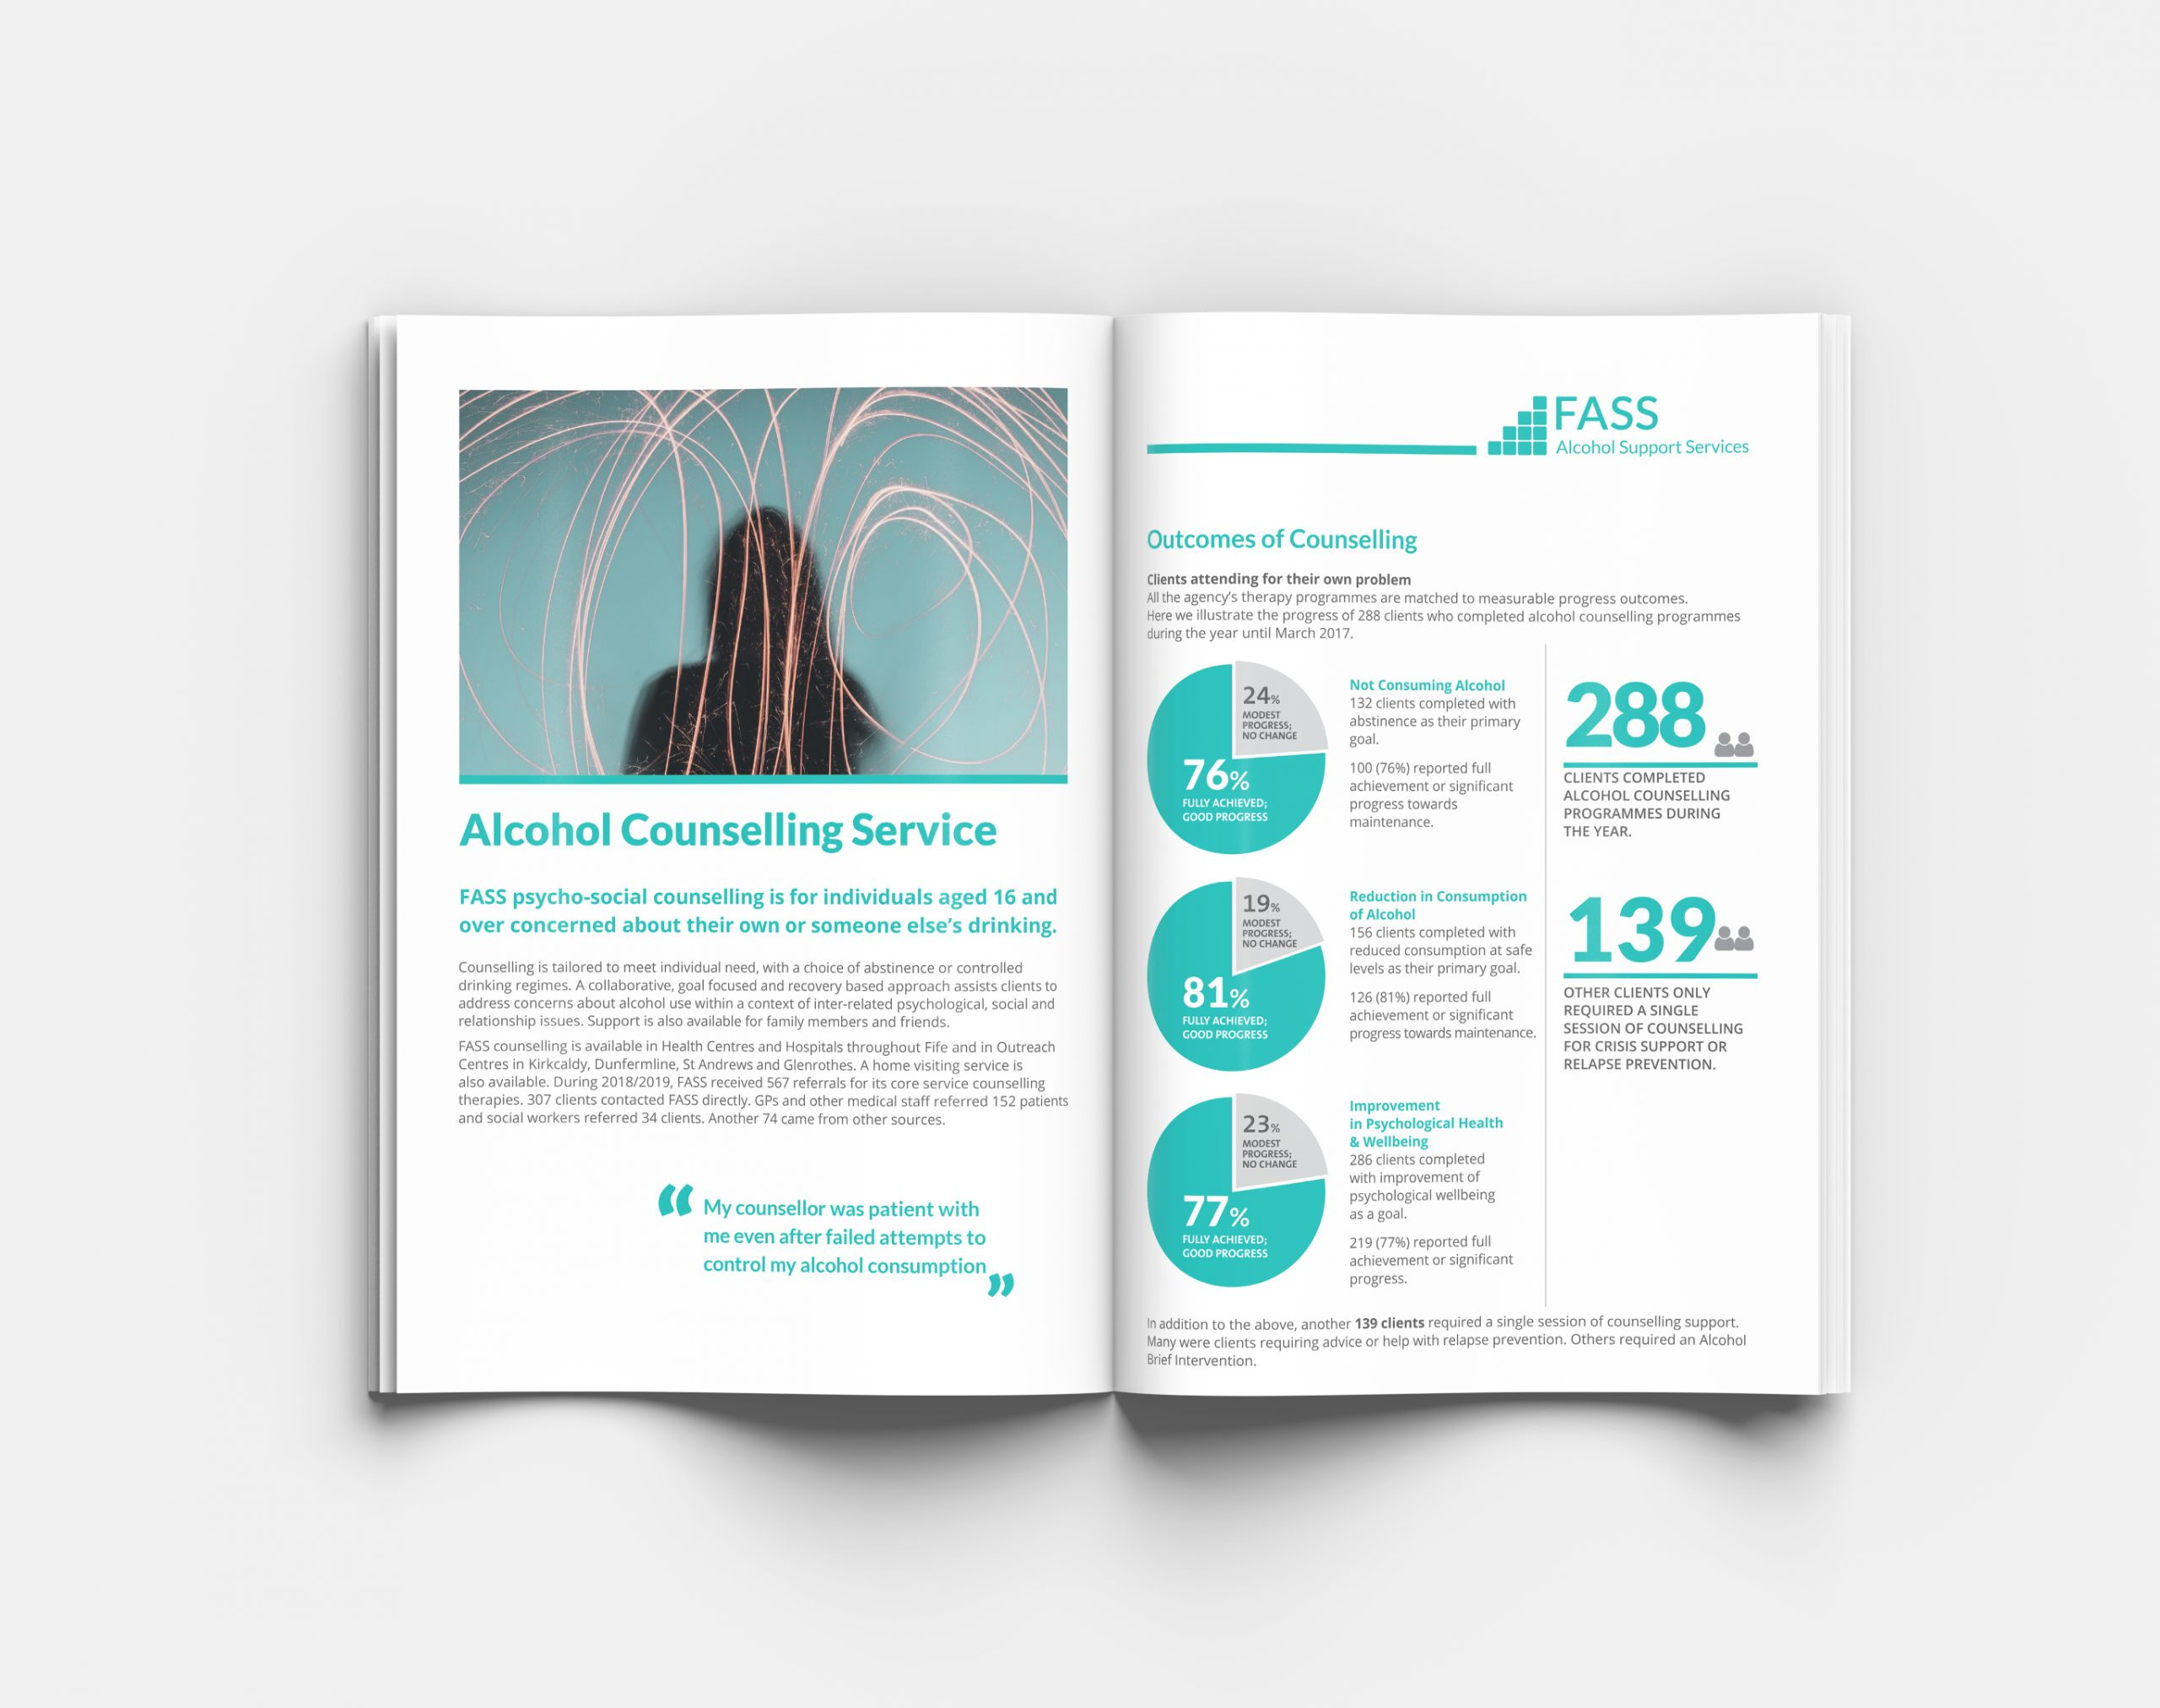 FASS Annual Report